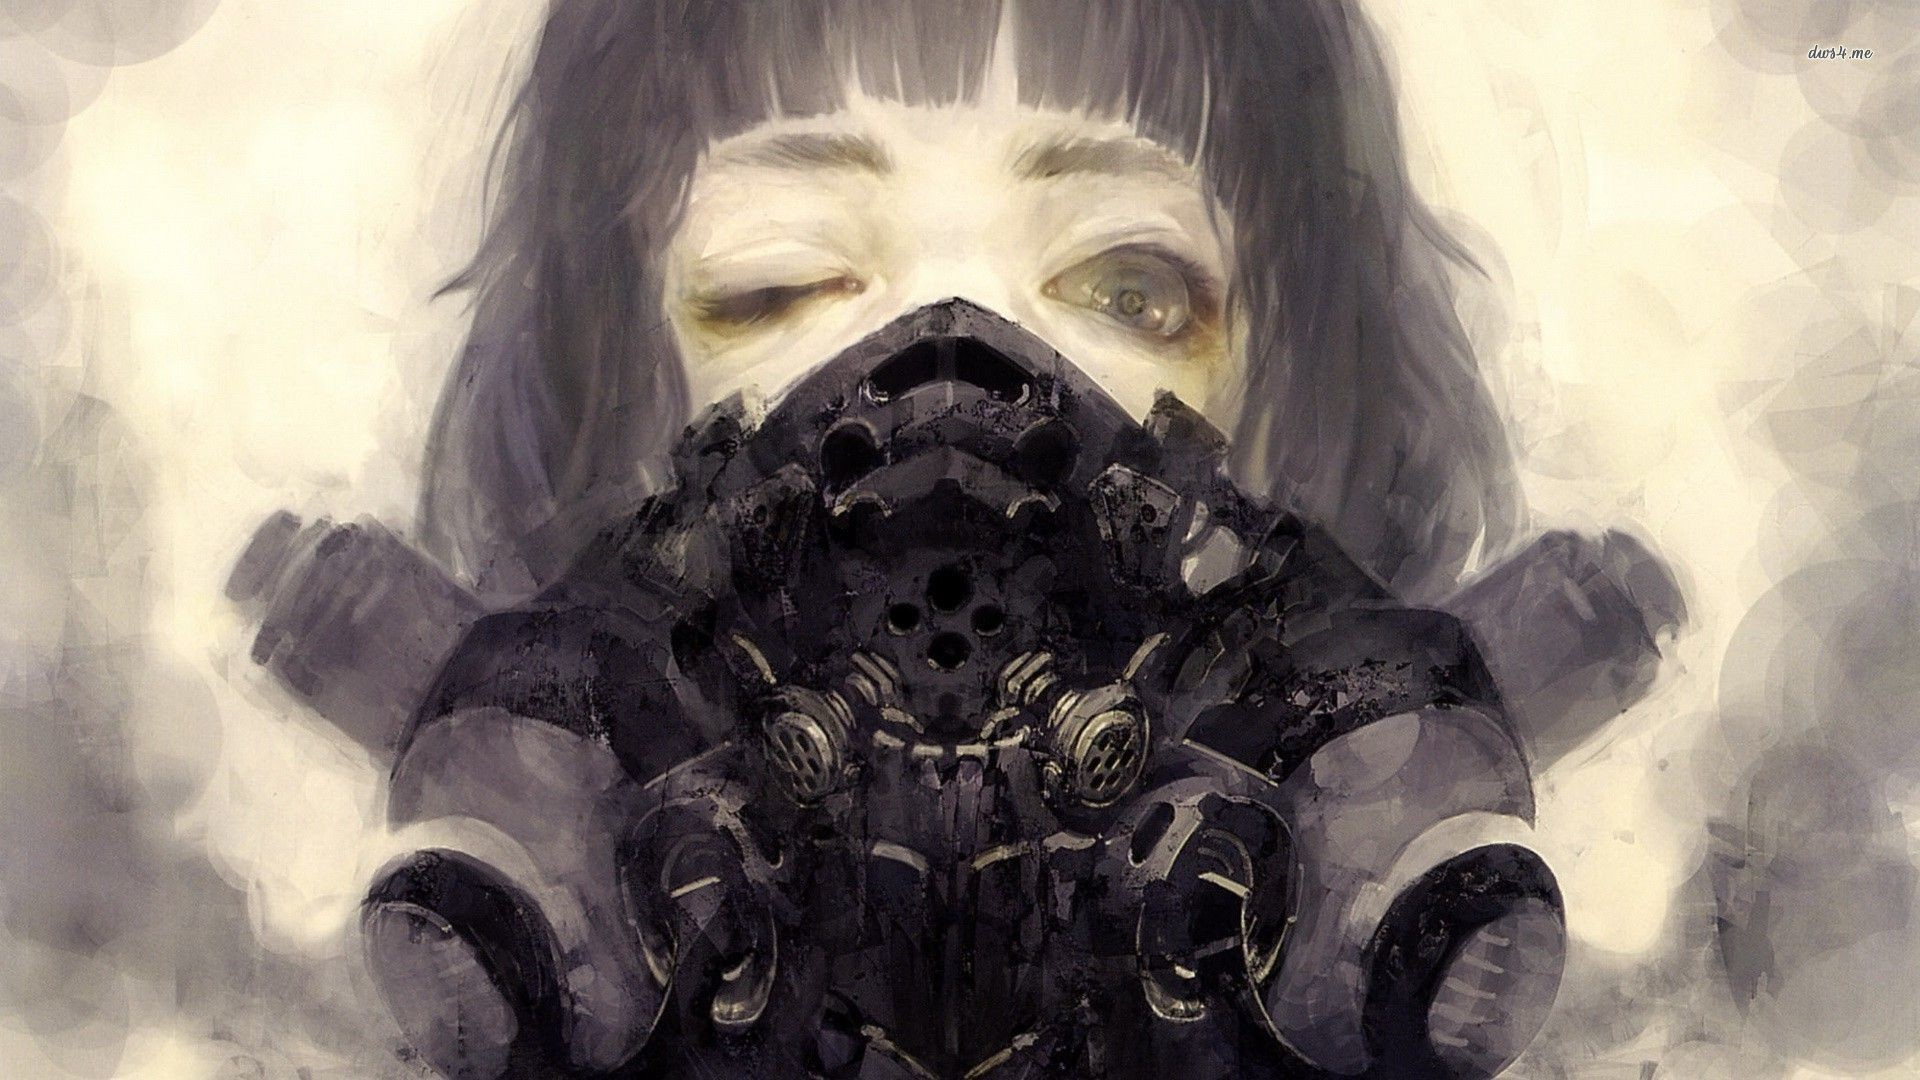 Steampunk gas mask on a girl wallpaper – Fantasy wallpapers – #17078